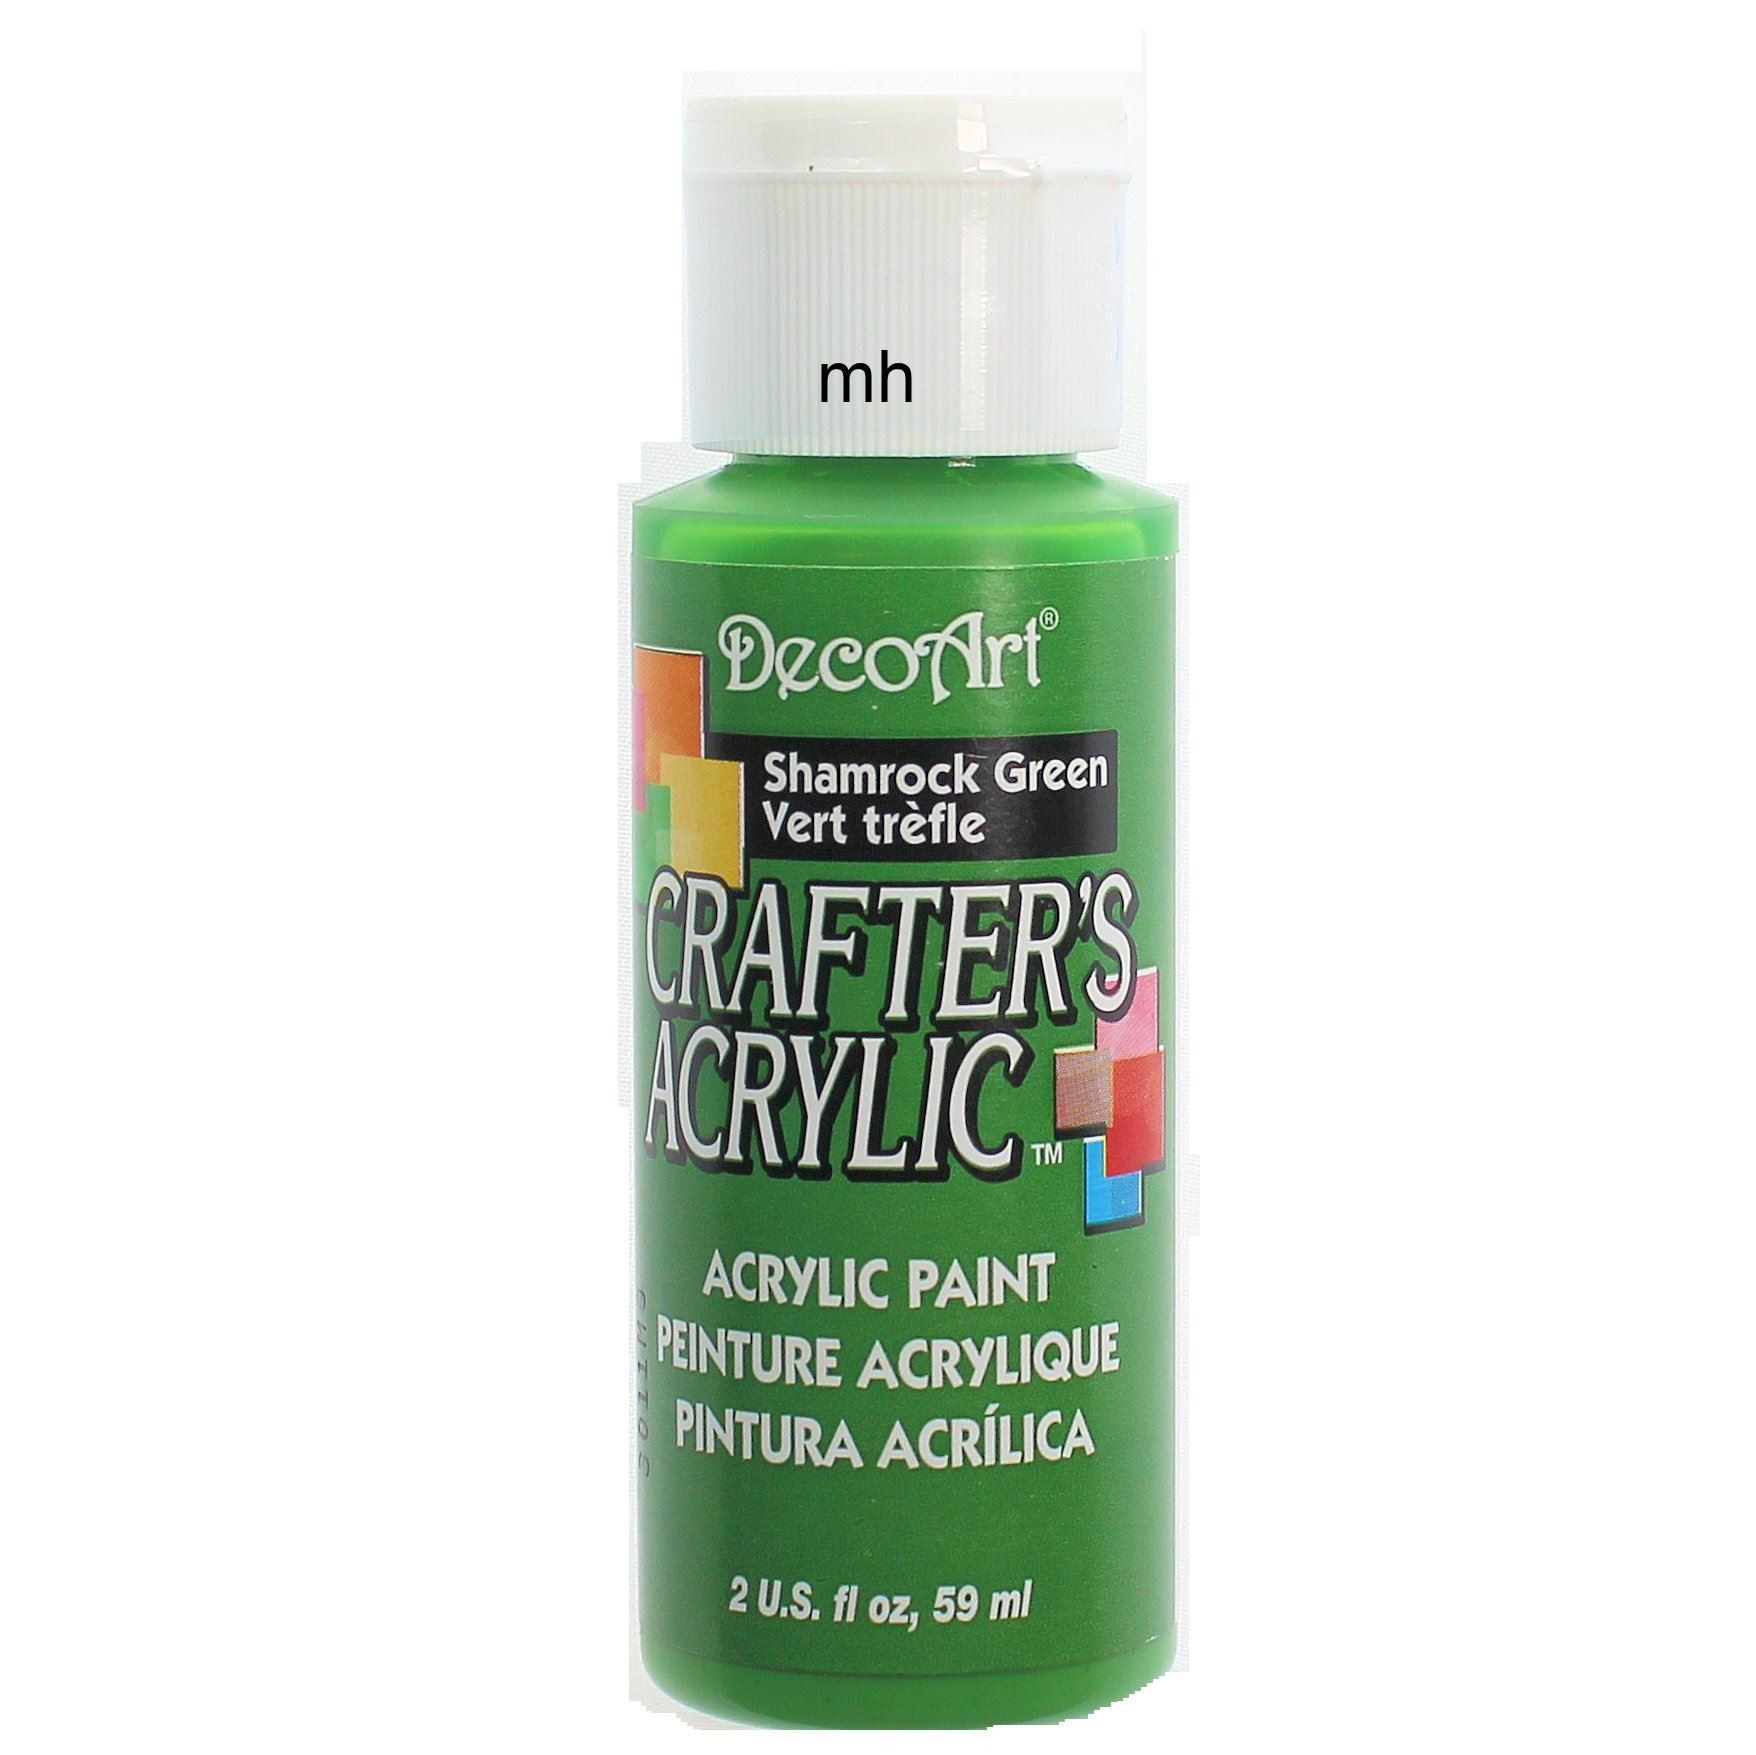 DecoArt Crafters' Acrylic Paint, Assorted Colours - Single 59ml Pots, Buy 2 get 3rd Free